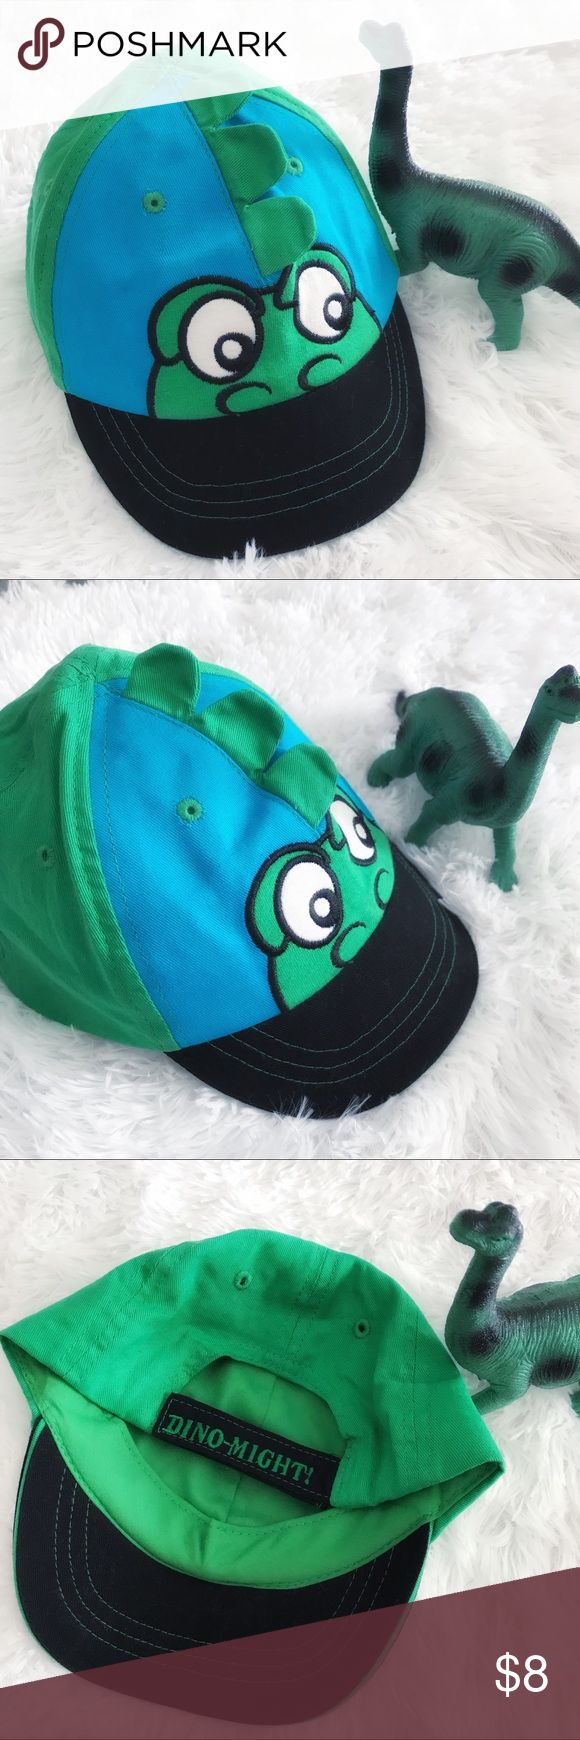 "🦕 •Adorable Kids Dino Cap• 🦕 •Adorable Kids Dino Cap• 🦕 In perfect condition; no flaws  🦕 One Size •18.5"" circumference• 🦕 Velcro fastener to increase/decrease circumference  🦕 Bundles are Discounted  🏆Ambassador ⭐️Trusted Seller  ☕️Thanks for shopping my closet Toby NYC Accessories Hats"